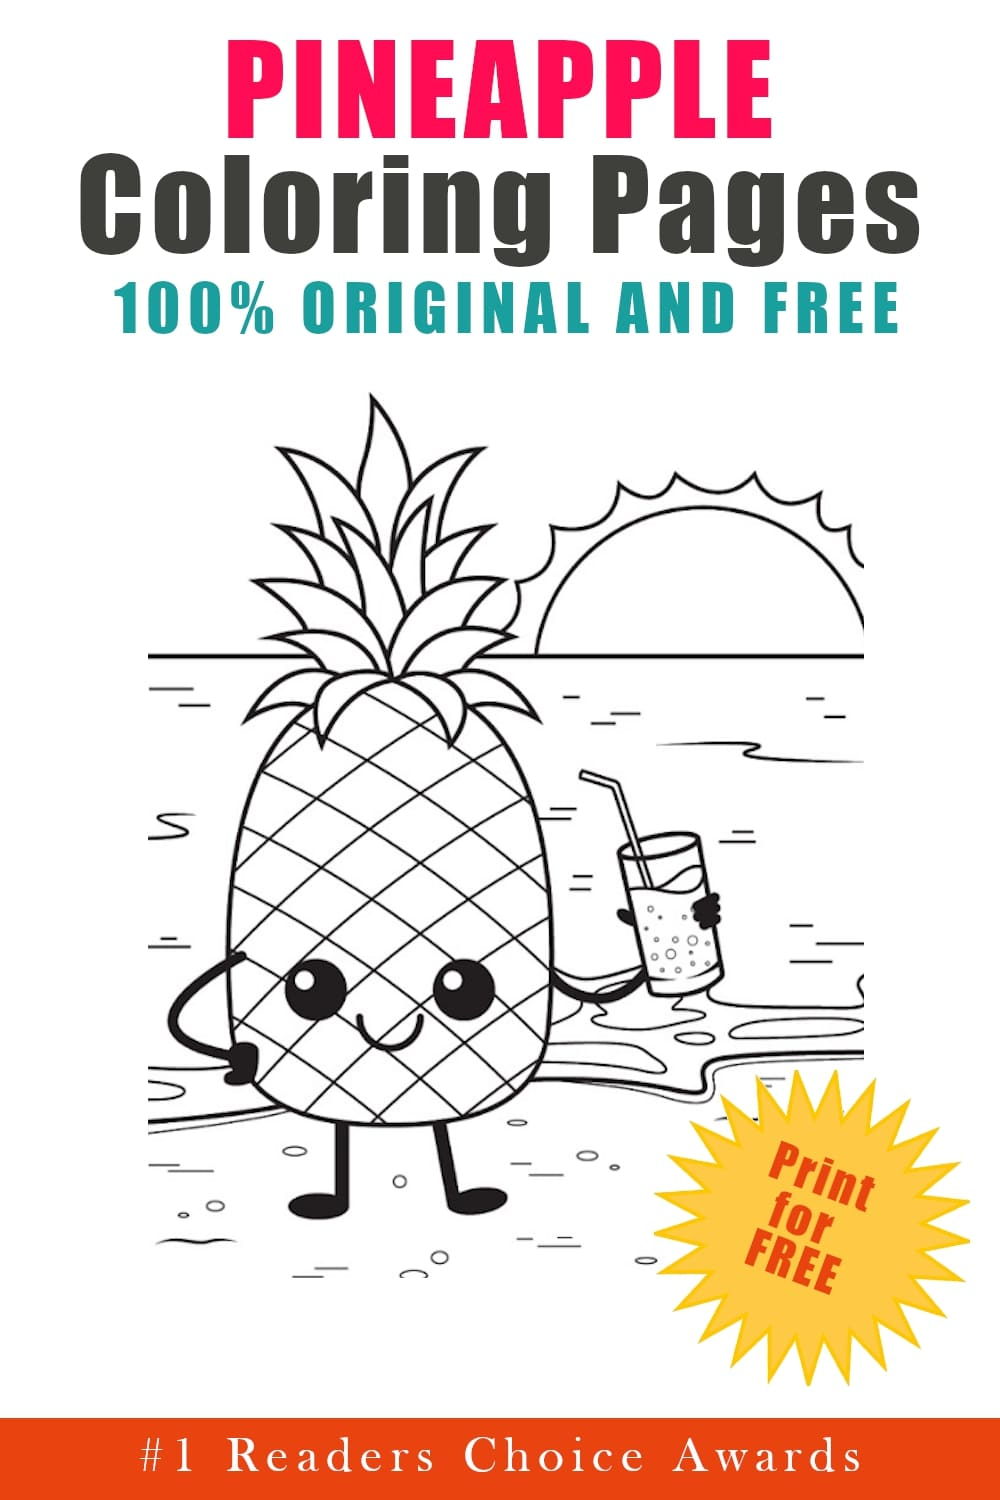 original and free pineapple coloring pages